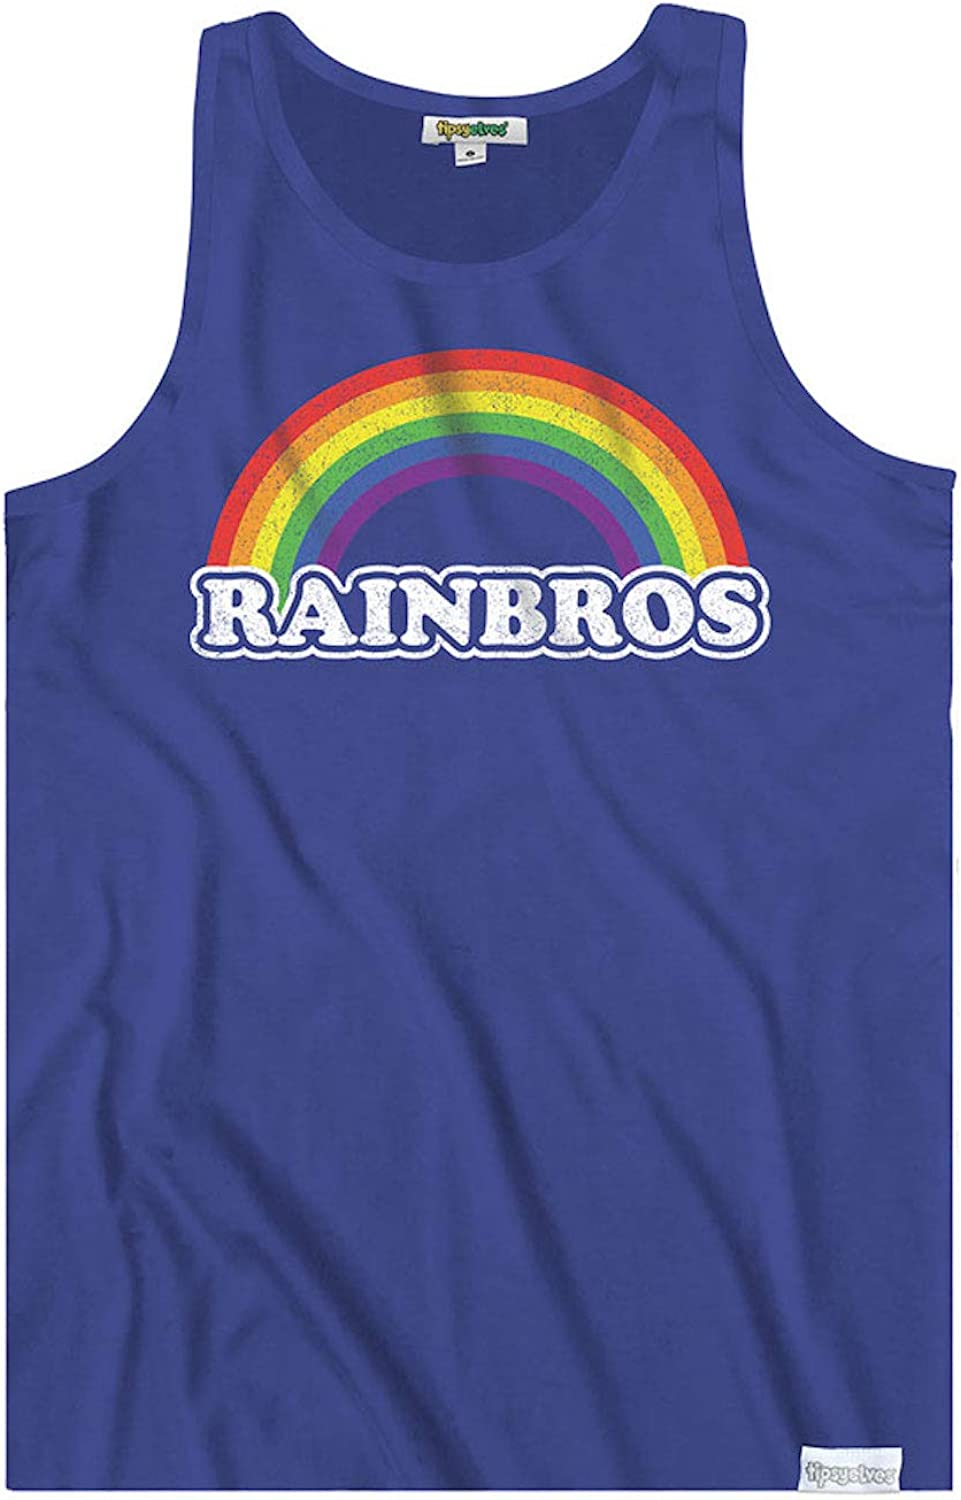 Fun and Loud Tank Tops for Pride, Festivals and Summer - Men's Cut: Clothing